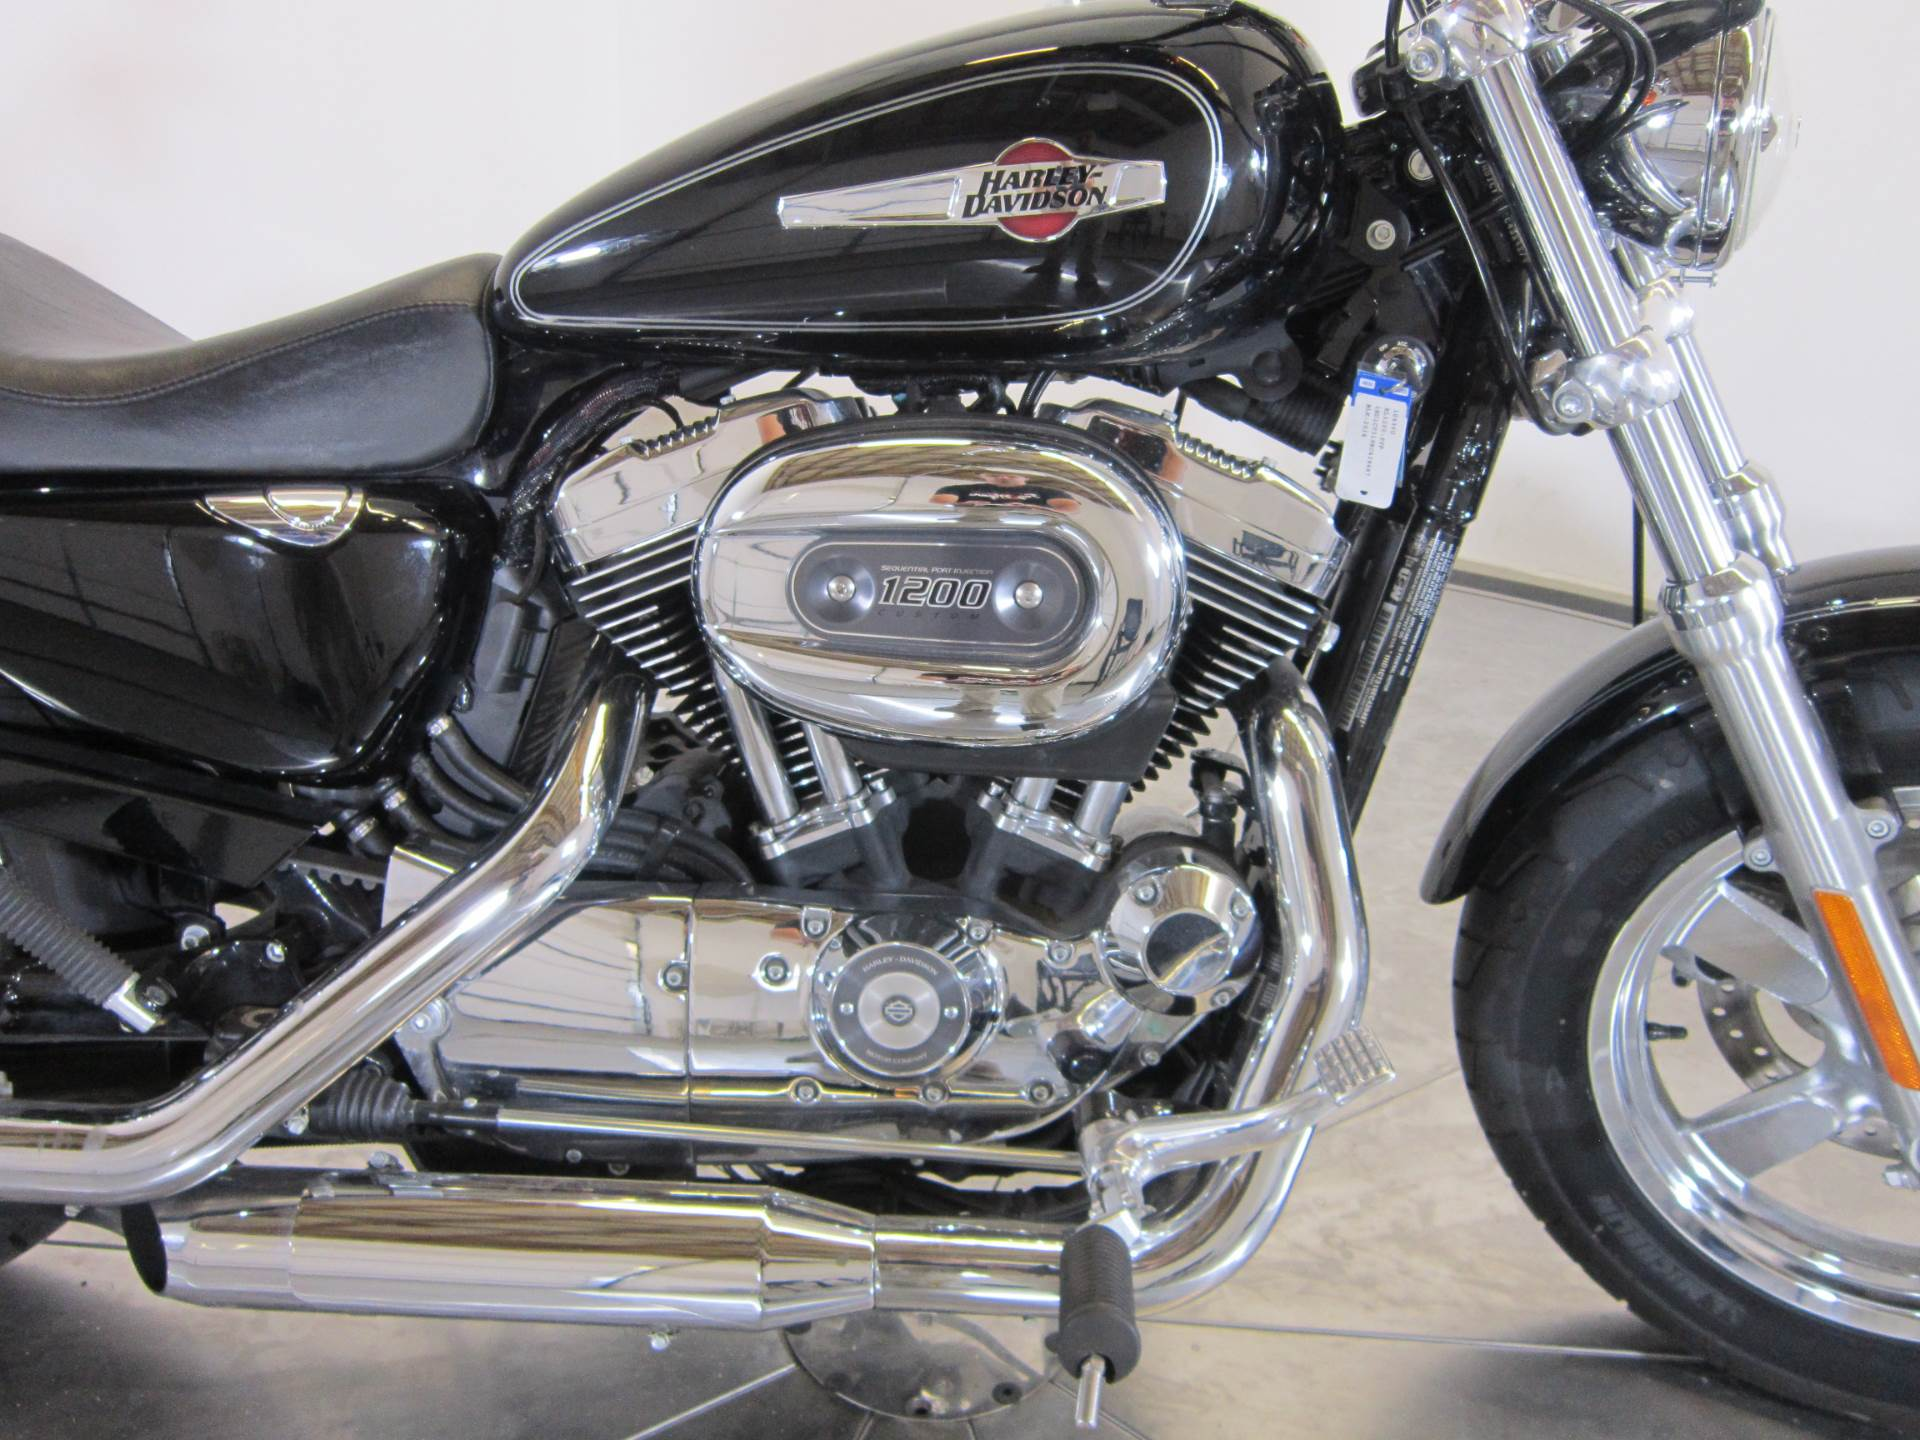 2014 Harley-Davidson 1200 Custom in Greenwood Village, Colorado